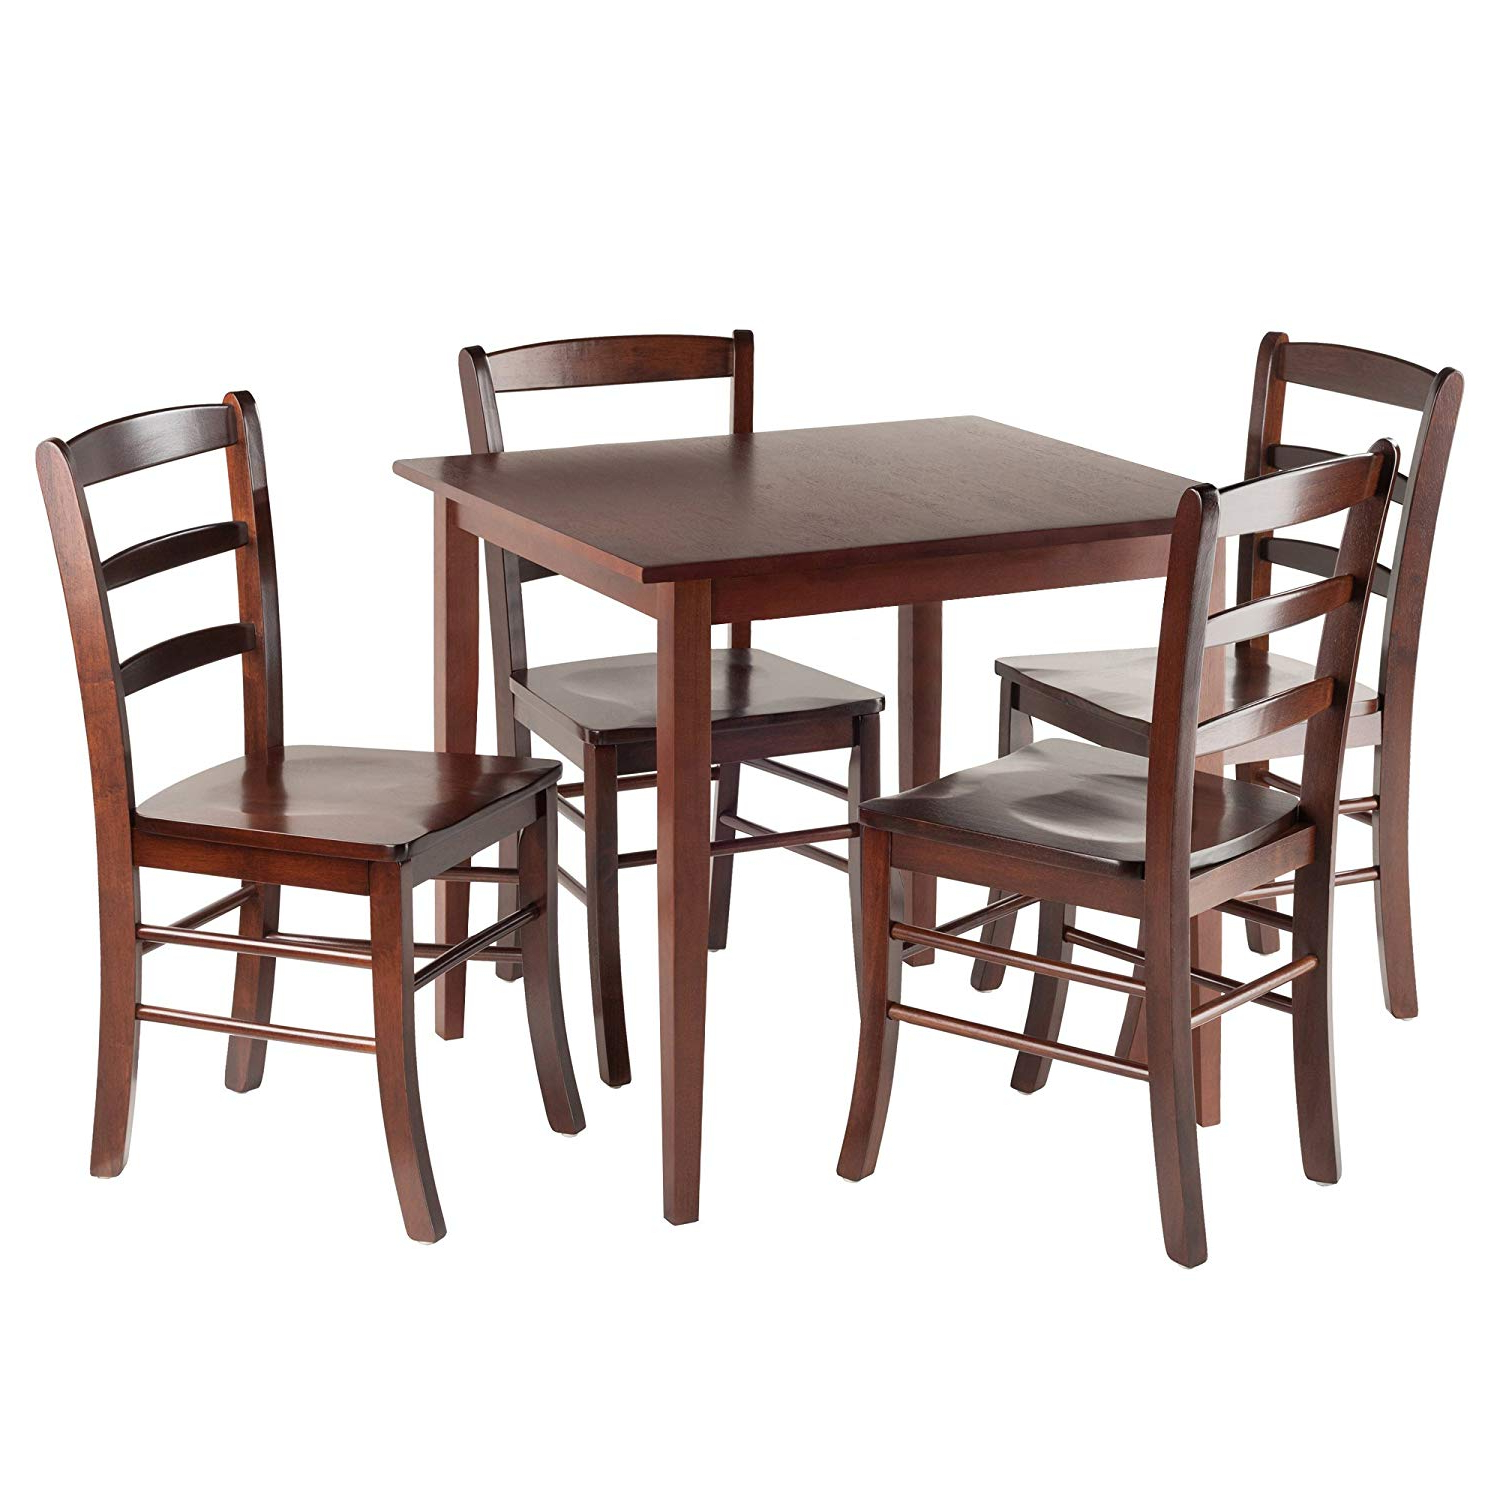 Sundberg 5 Piece Solid Wood Dining Sets With Regard To Popular Winsome Groveland 5 Piece Wood Dining Set, Light Oak Finish (View 16 of 20)